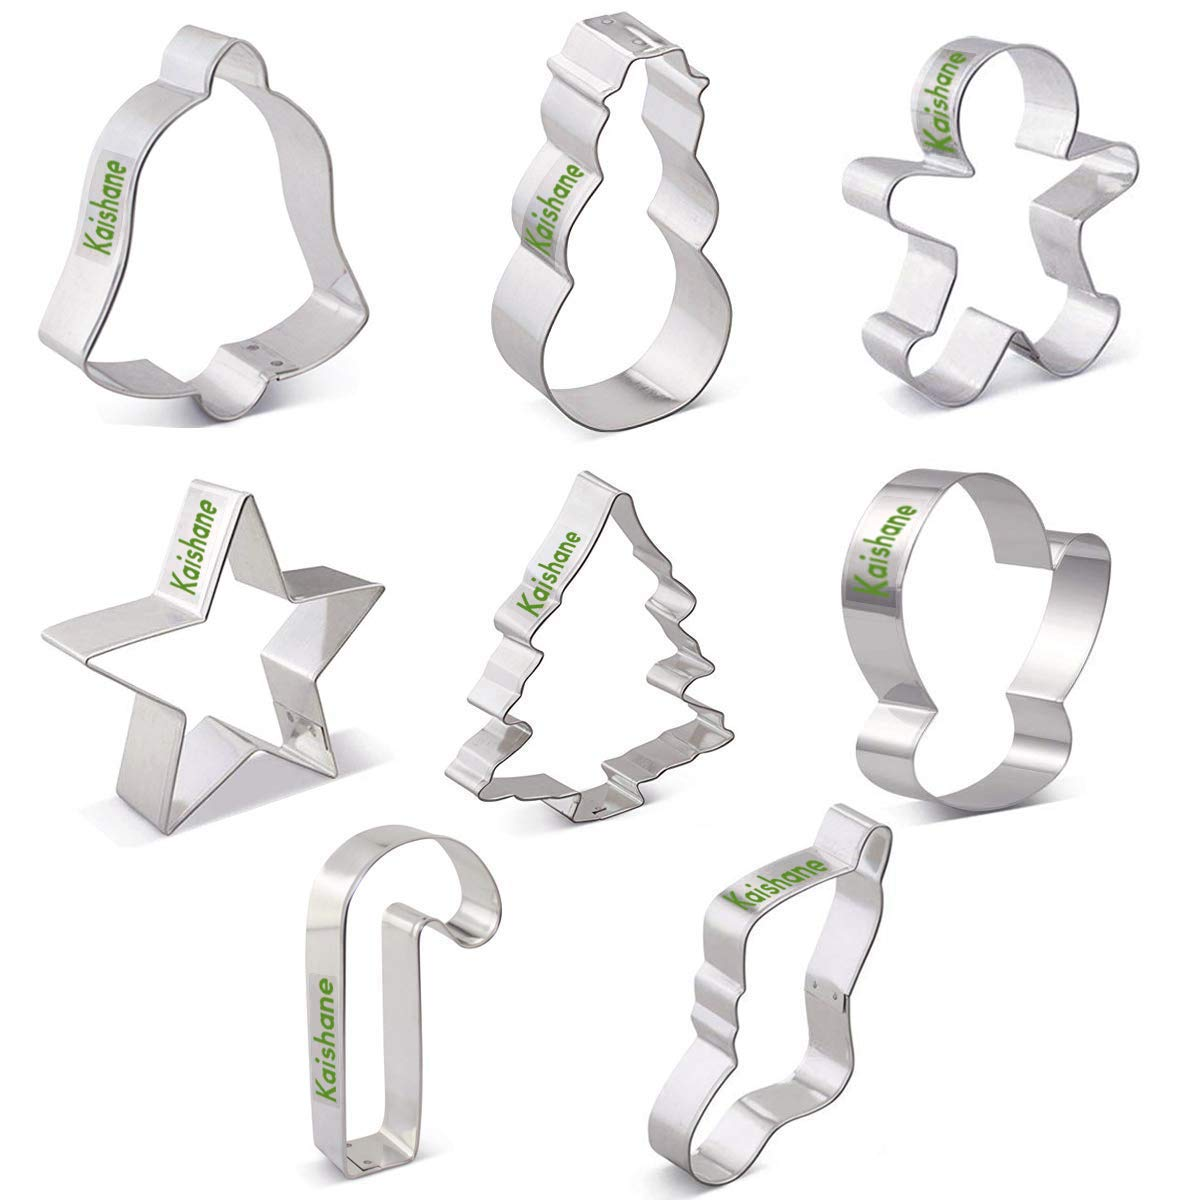 Christmas Cookie Cutters for Kids Set of 8 - Star Tree Angel Bell Stocking & More Shapes by KAISHANE